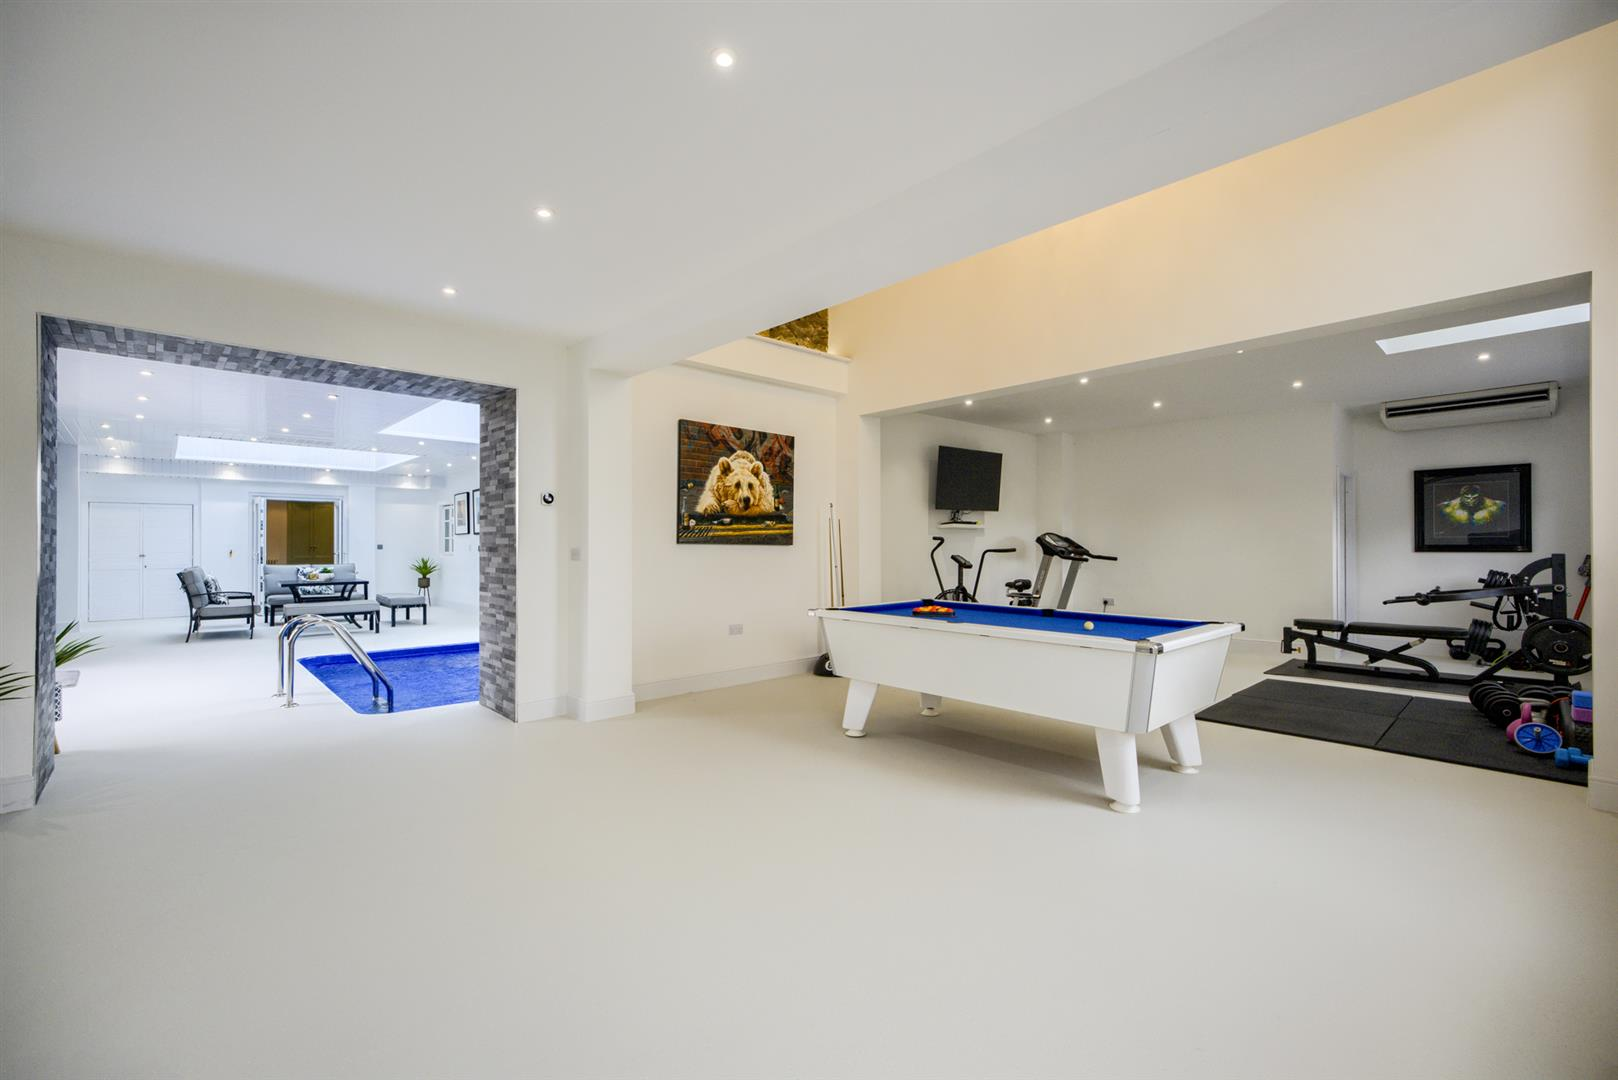 Stourport-On-Severn, Worcestershire, 7 Bedrooms Home Gym